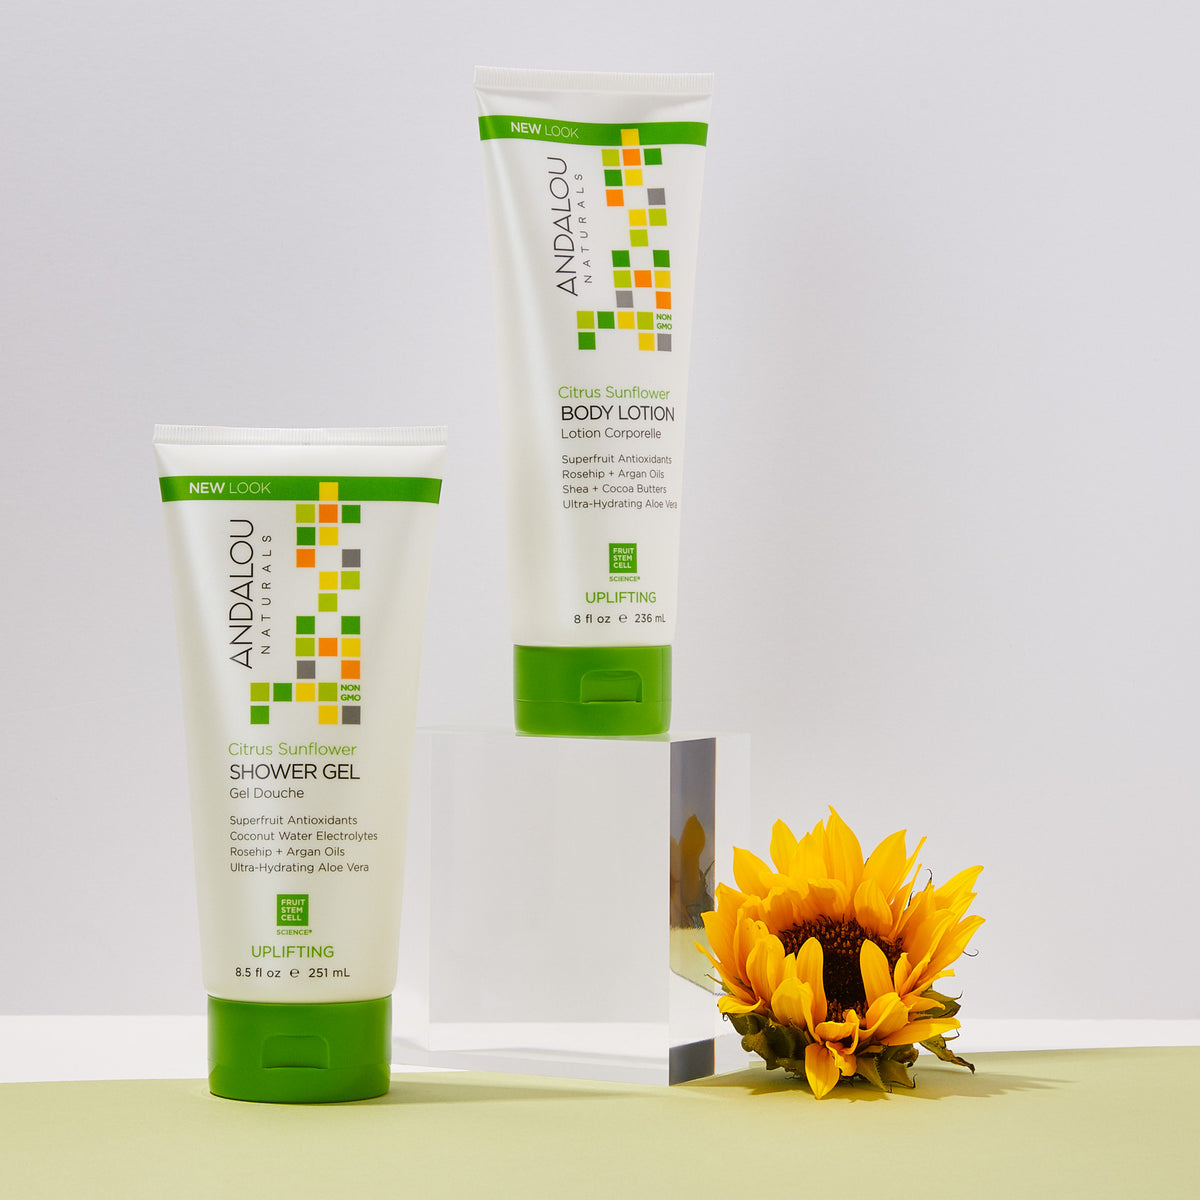 Citrus Sunflower Uplifting Body Lotion